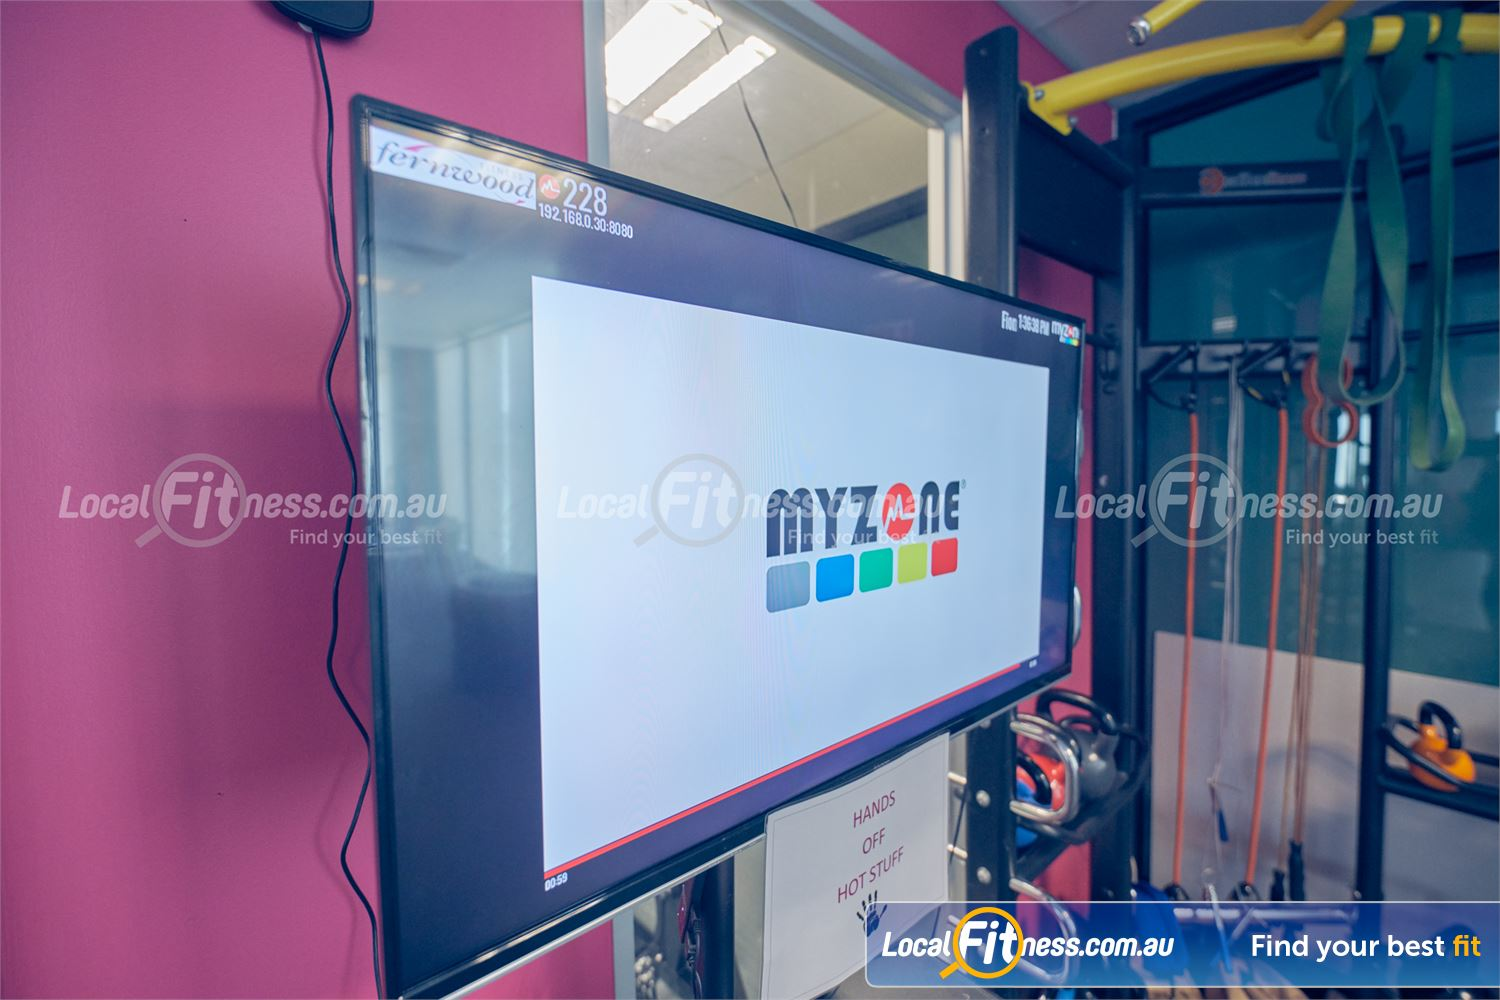 Fernwood Fitness Cairnlea Track your effort on our Myzone screens at Fernwood Cairnlea.